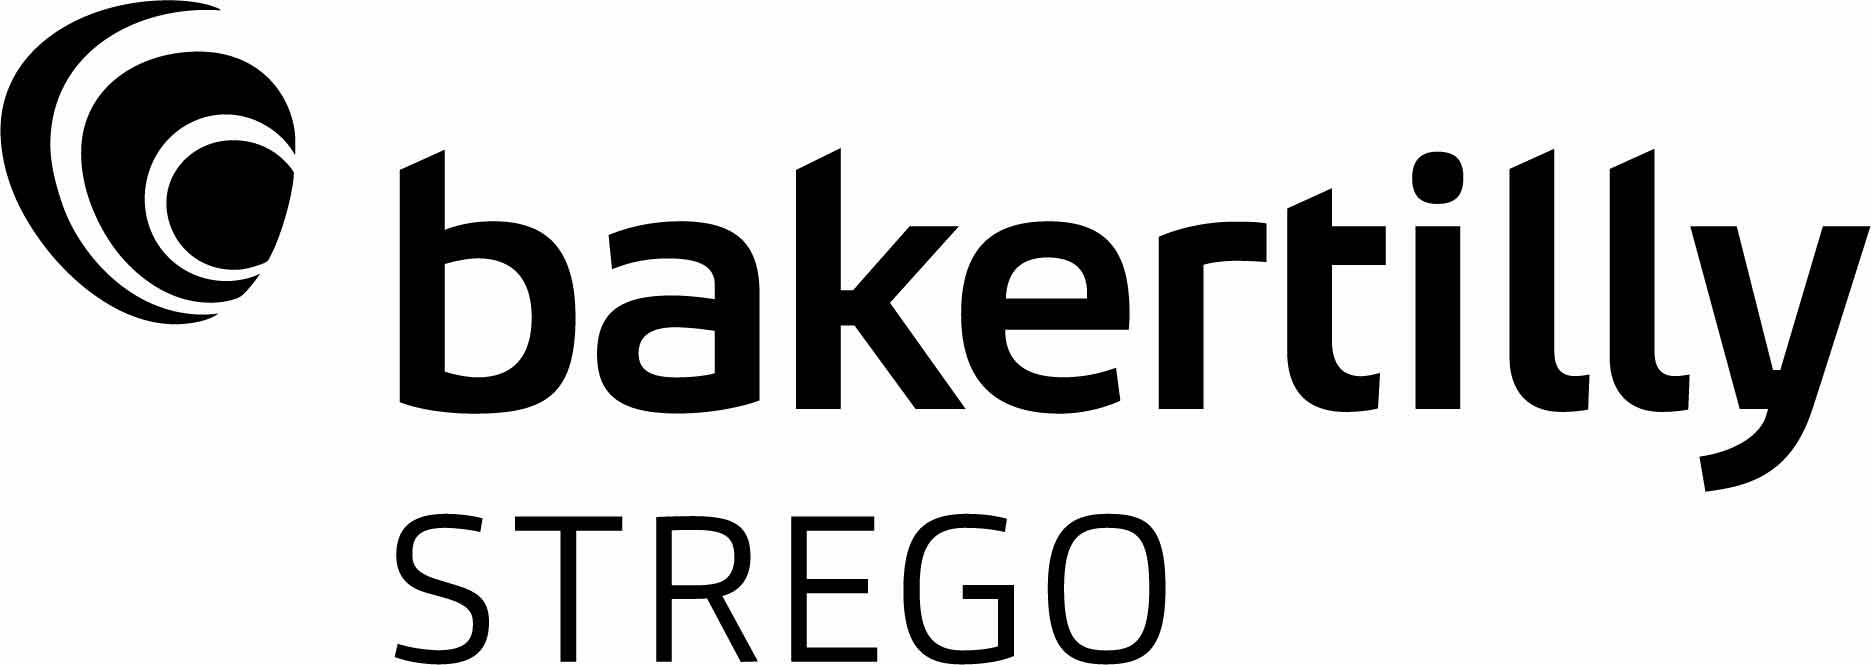 Bakertilly Strego